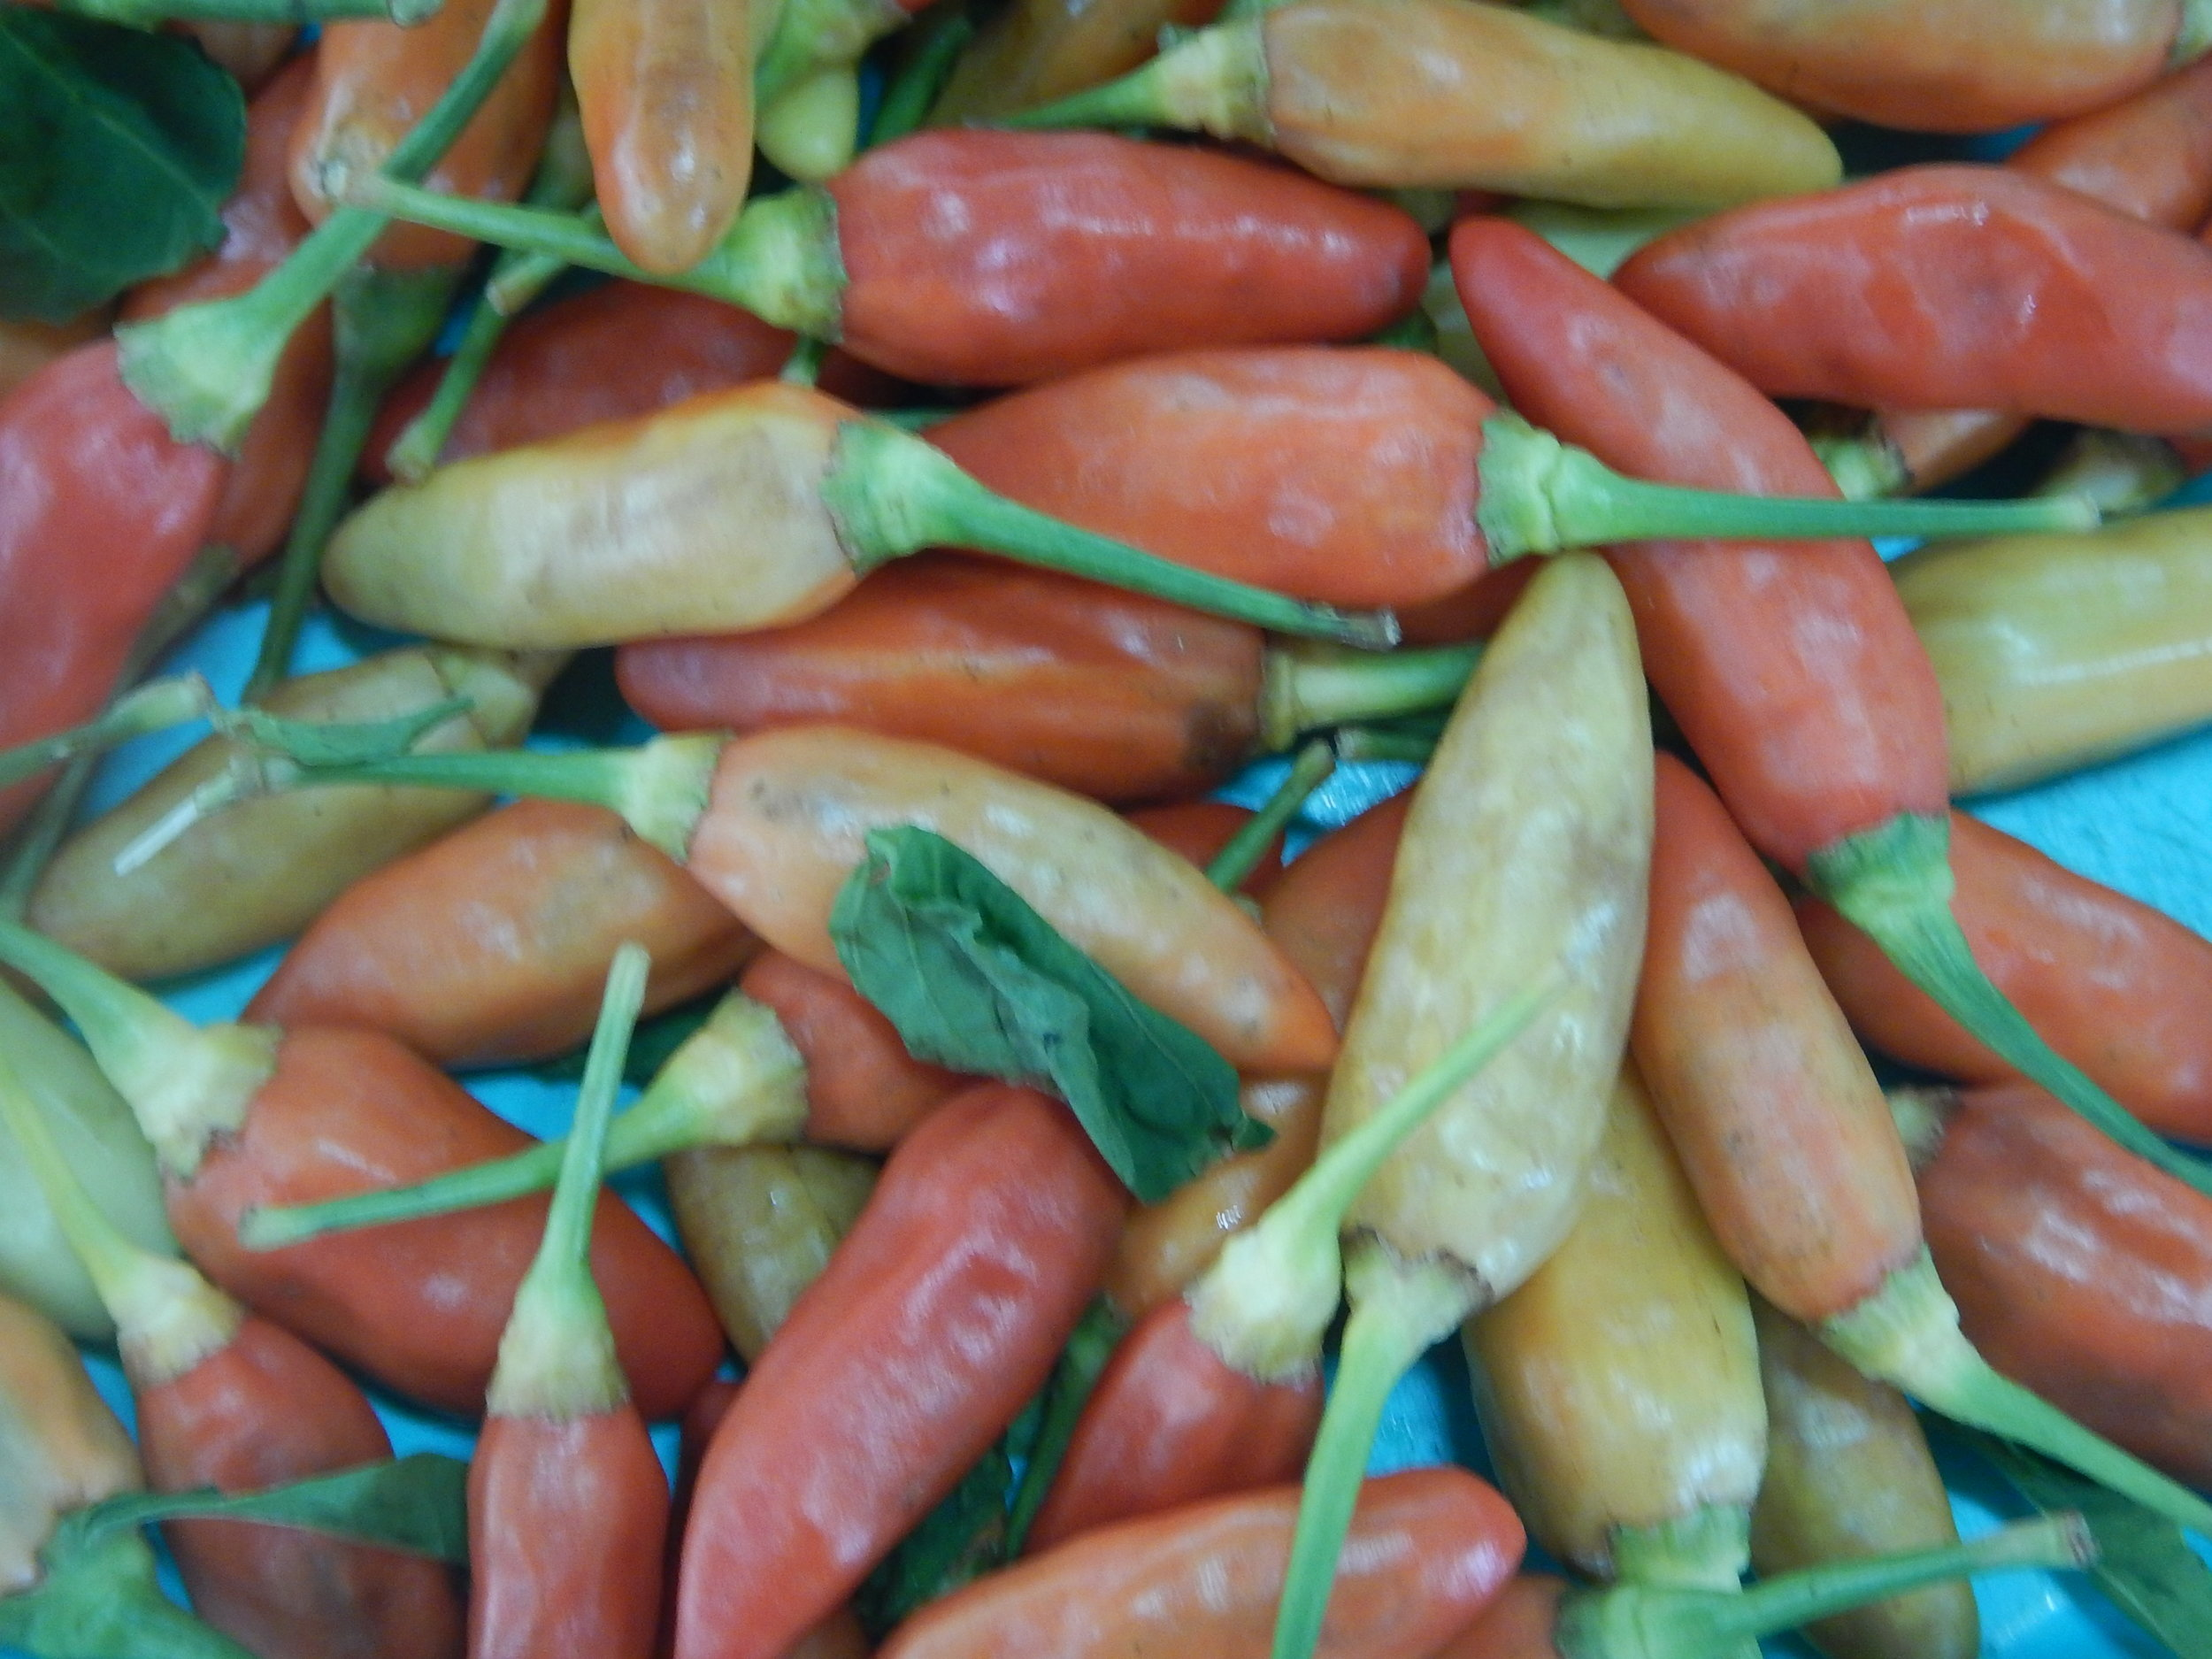 And a great assortment of chillies